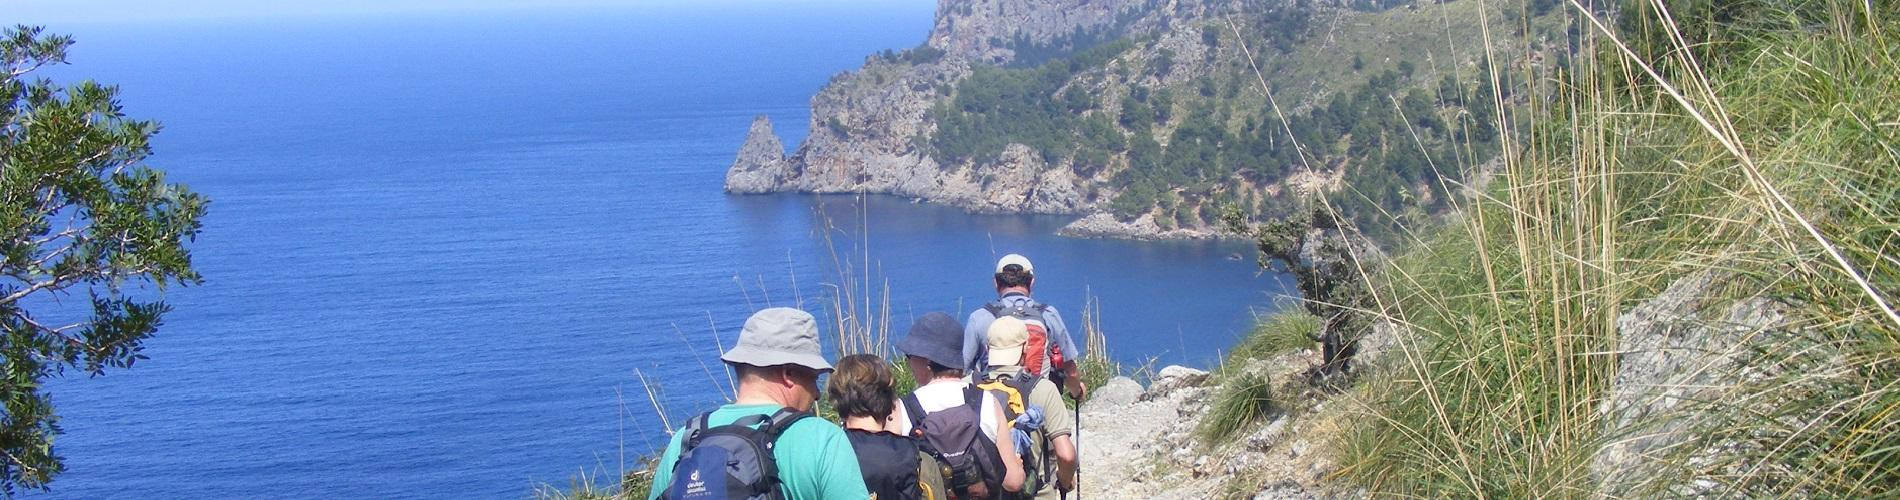 voyages aventure Baleares